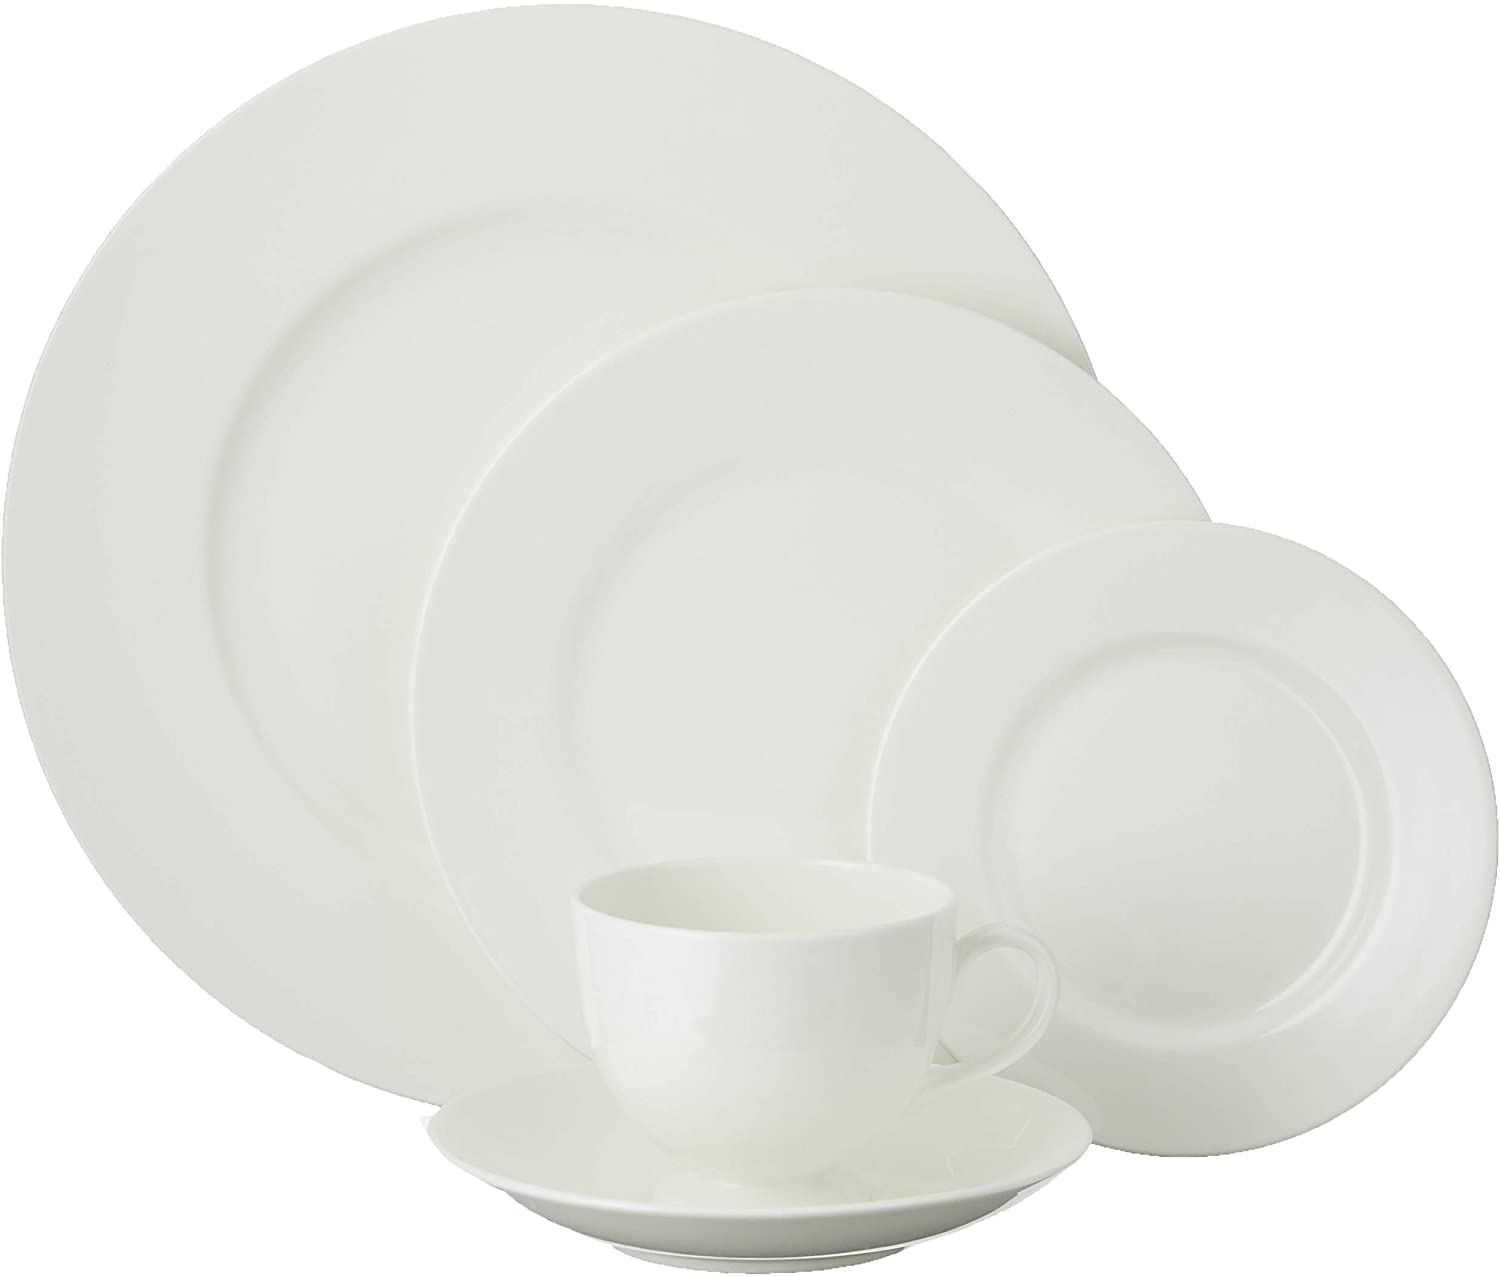 Wedgwood White 5-Piece Place Setting 5 pc placesetting